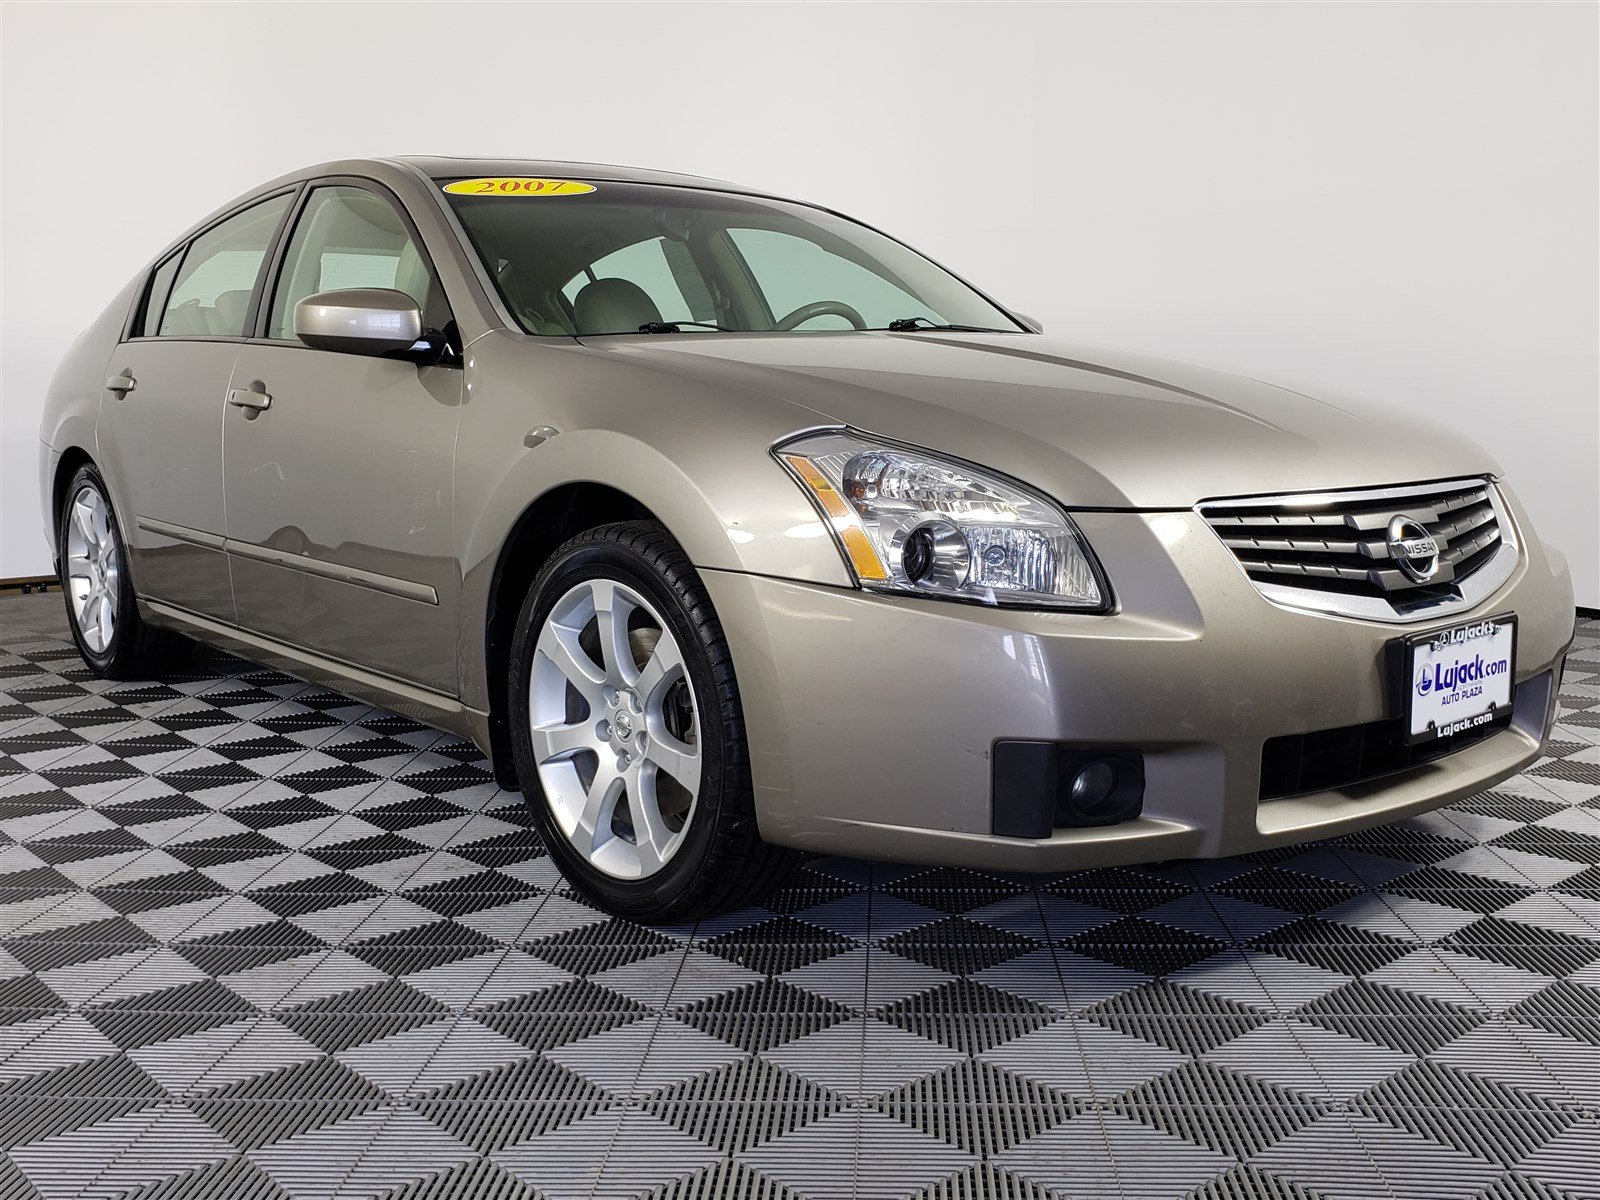 Pre-Owned 2007 Nissan Maxima 3.5 SL